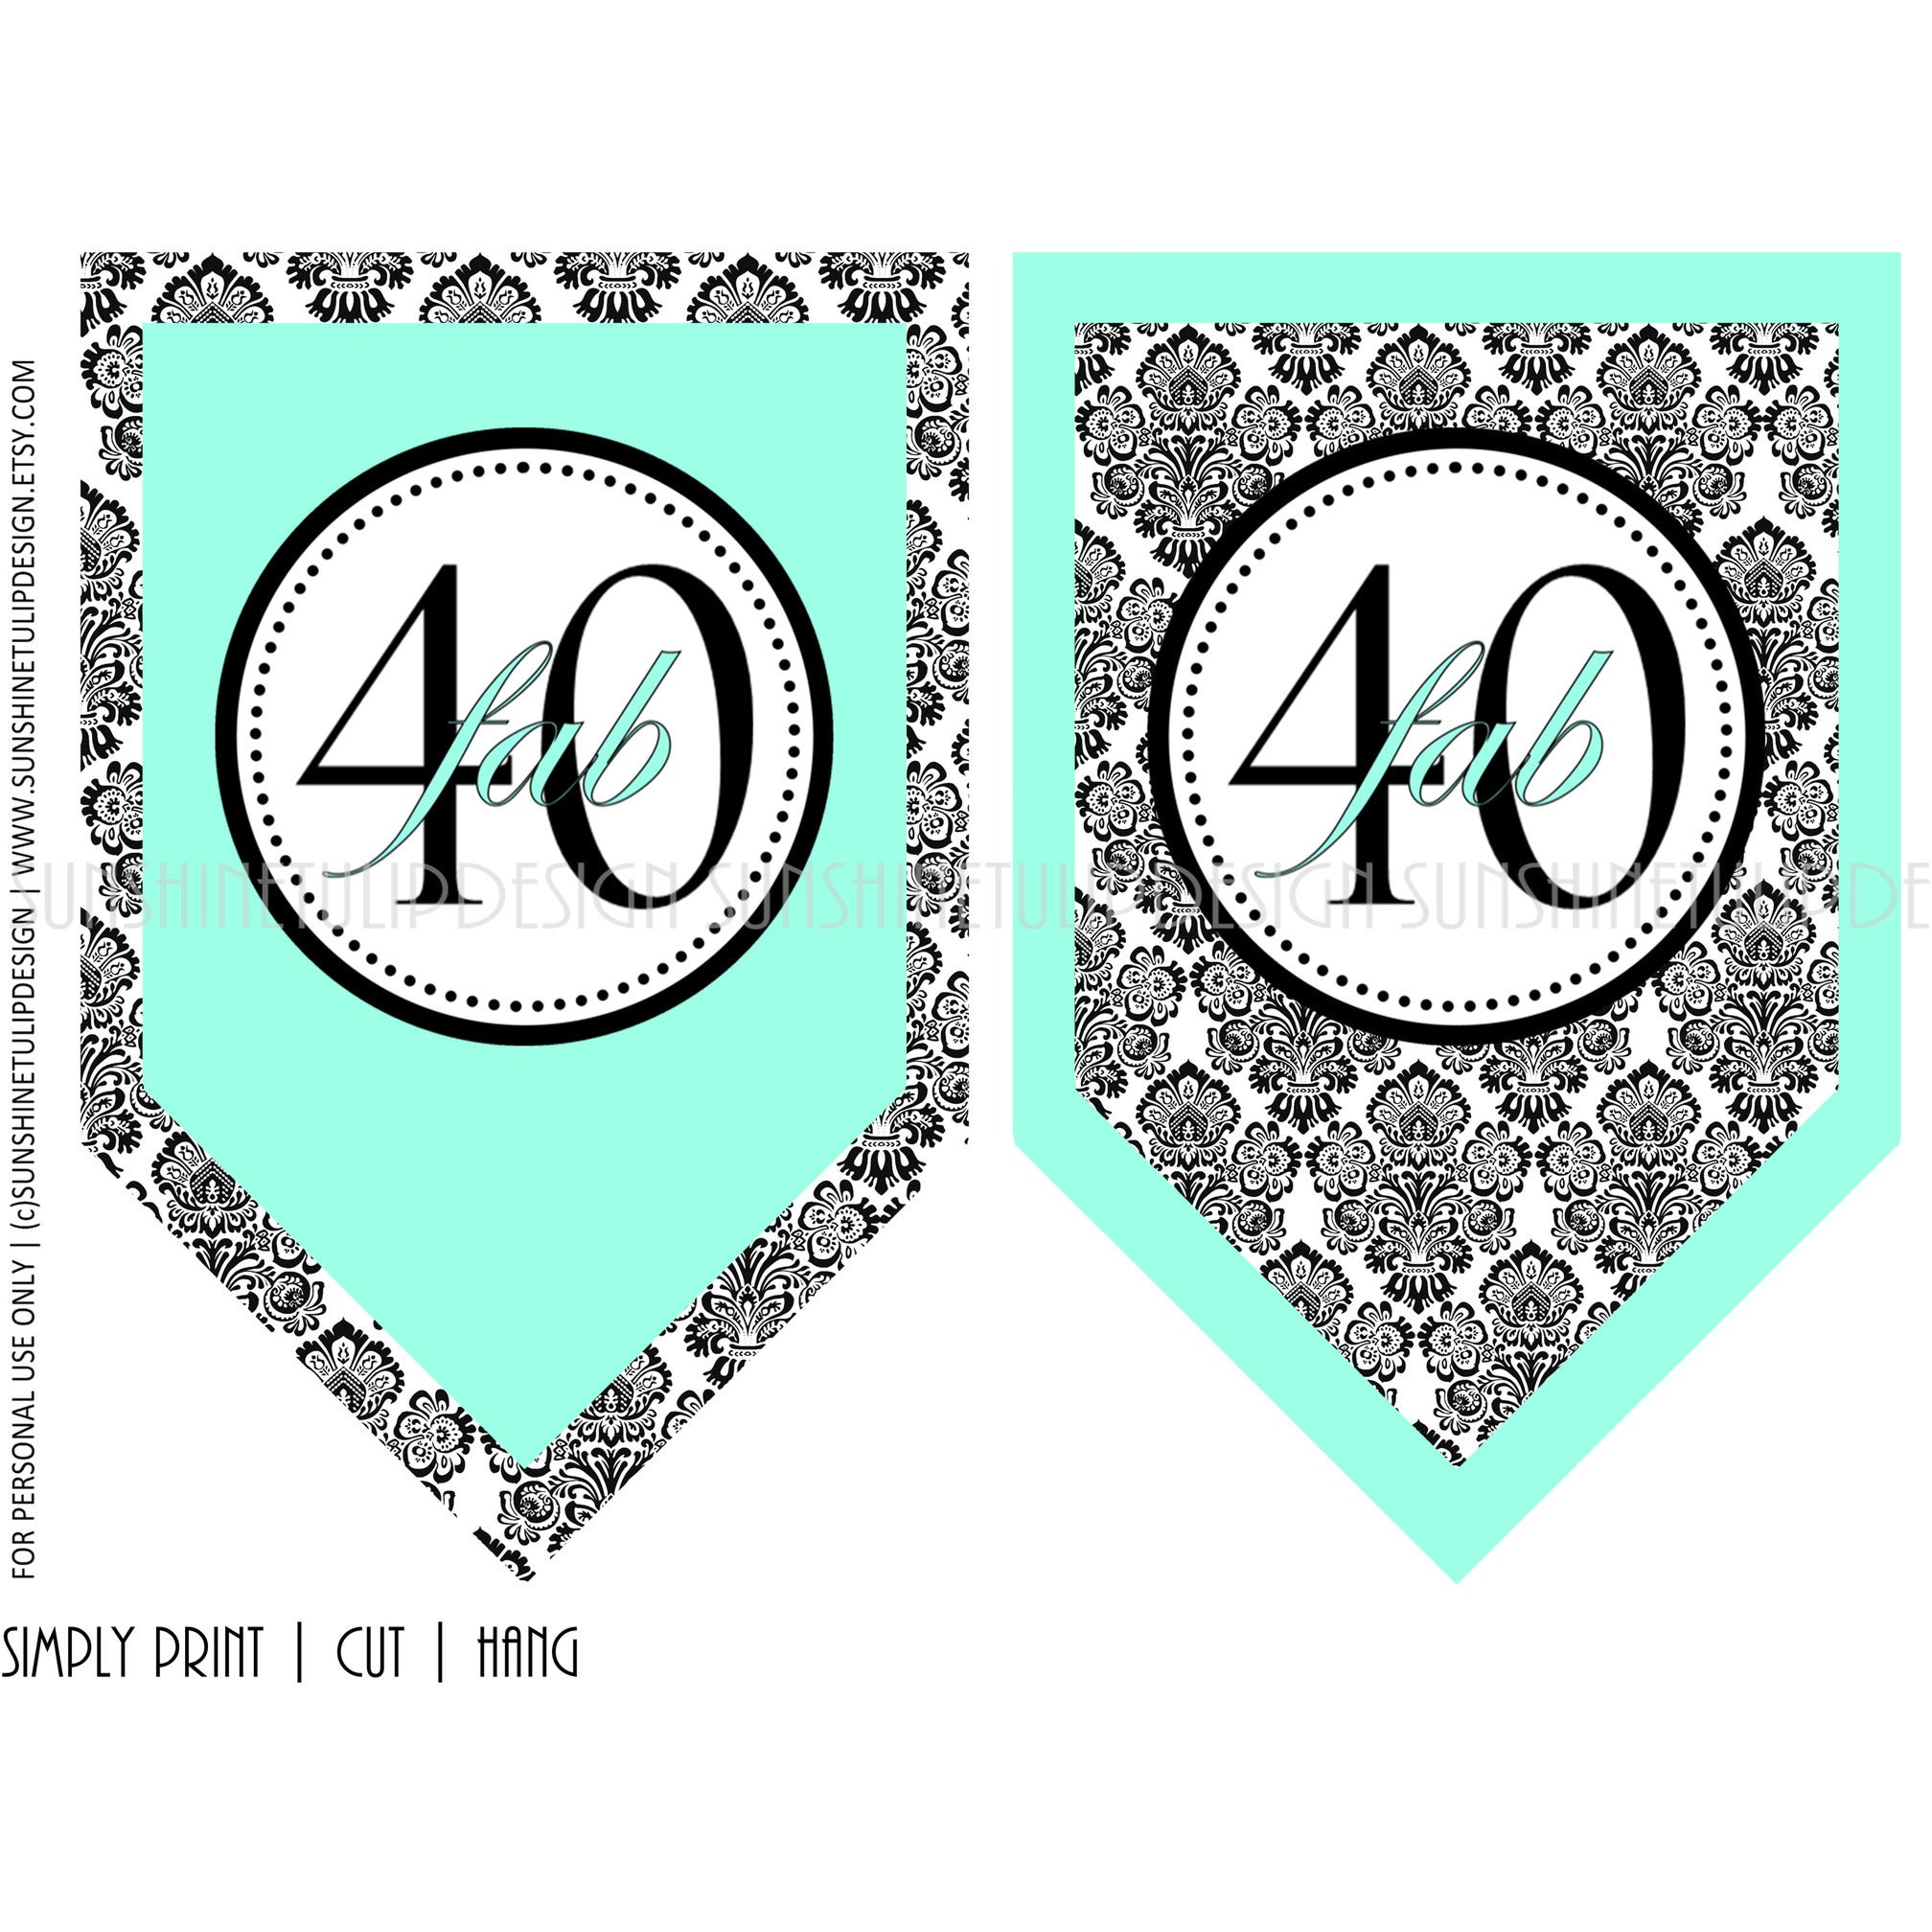 graphic relating to Printable Birthday Banners identified as Printable 40th Birthday Aqua Black Damask Banner